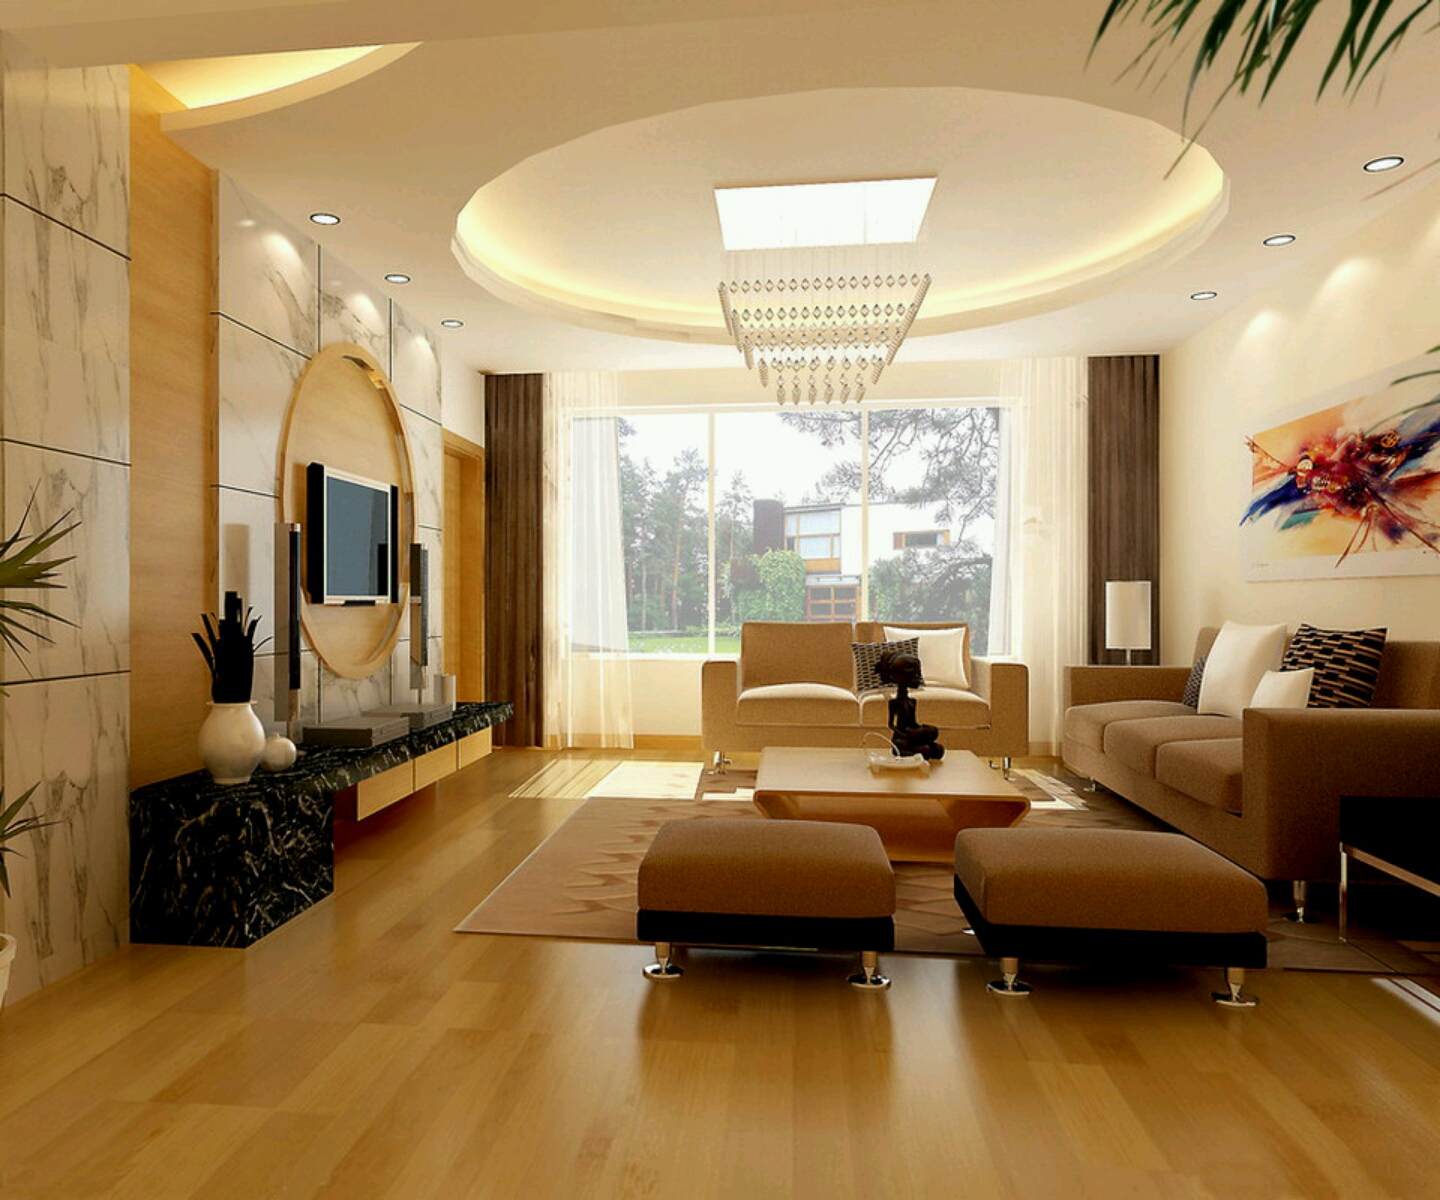 Modern interior decoration living rooms ceiling designs for Living room ideas modern